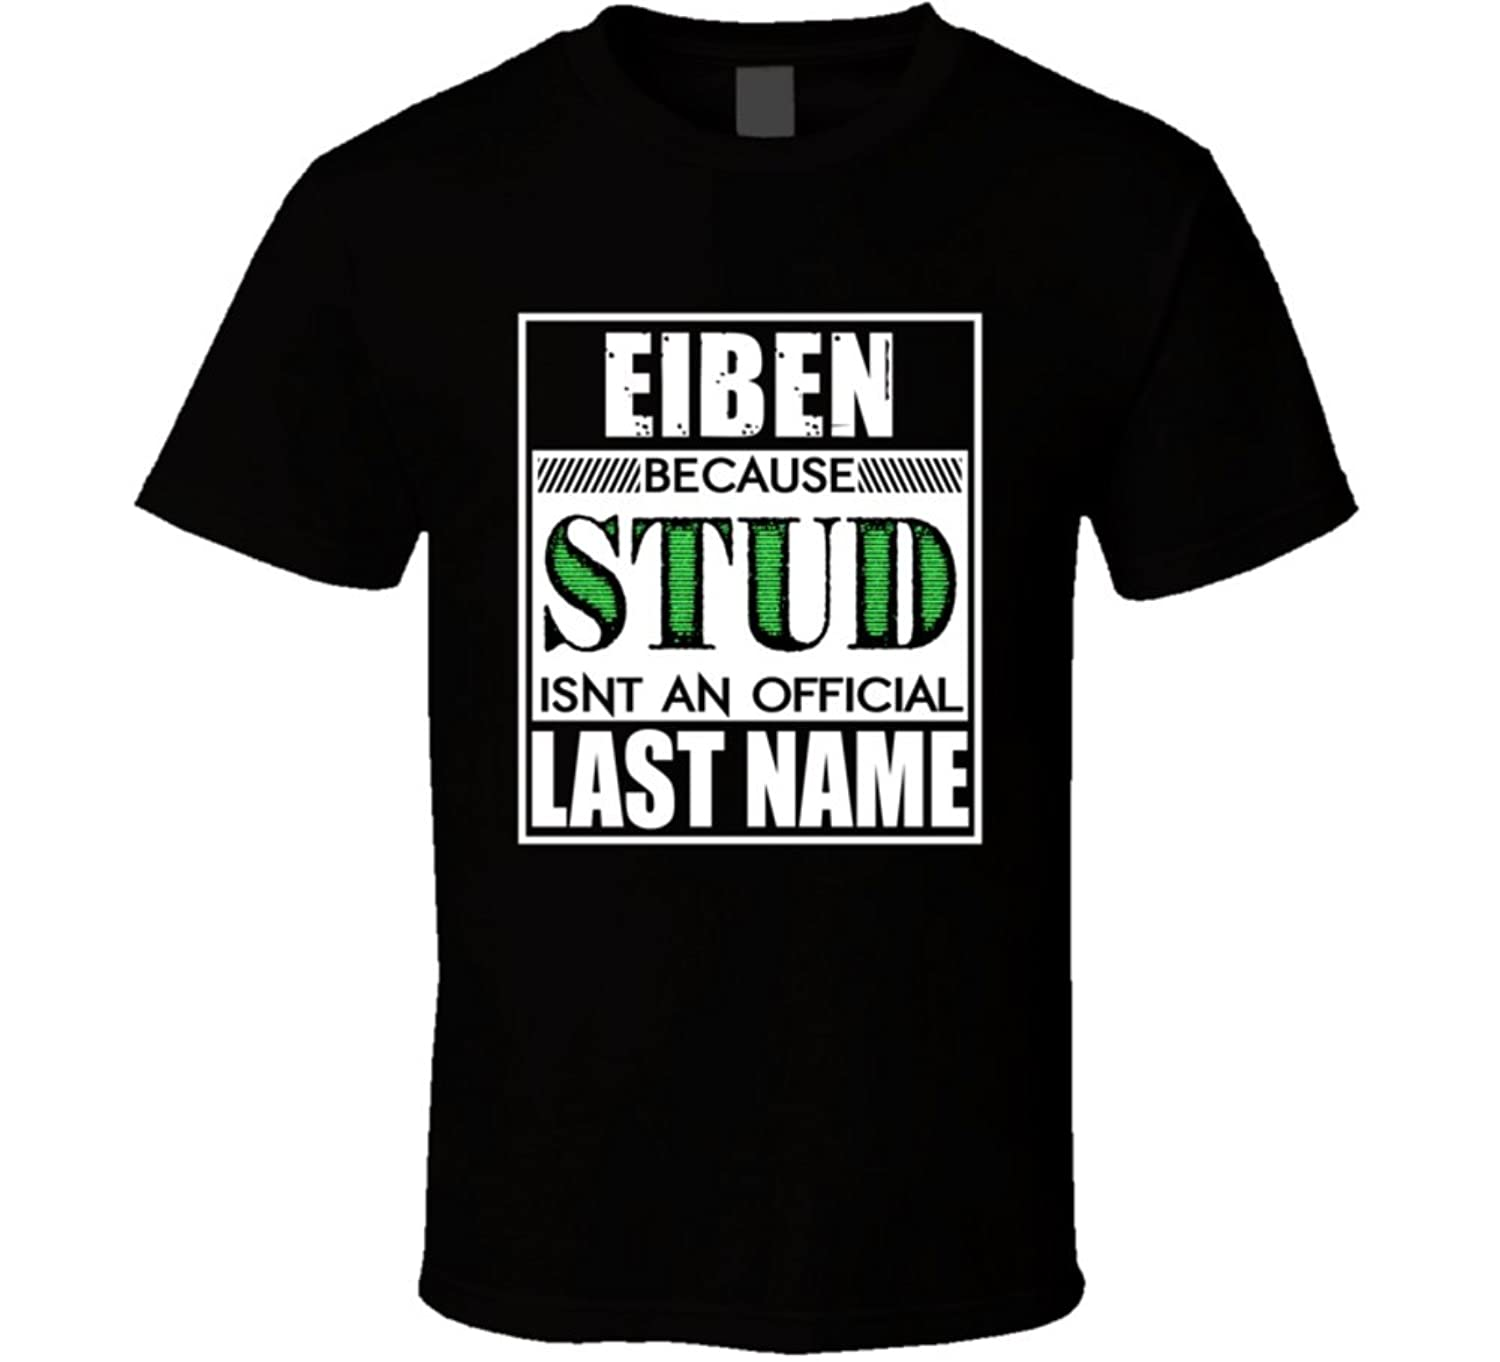 Eiben Because Stud official Last Name Funny T Shirt